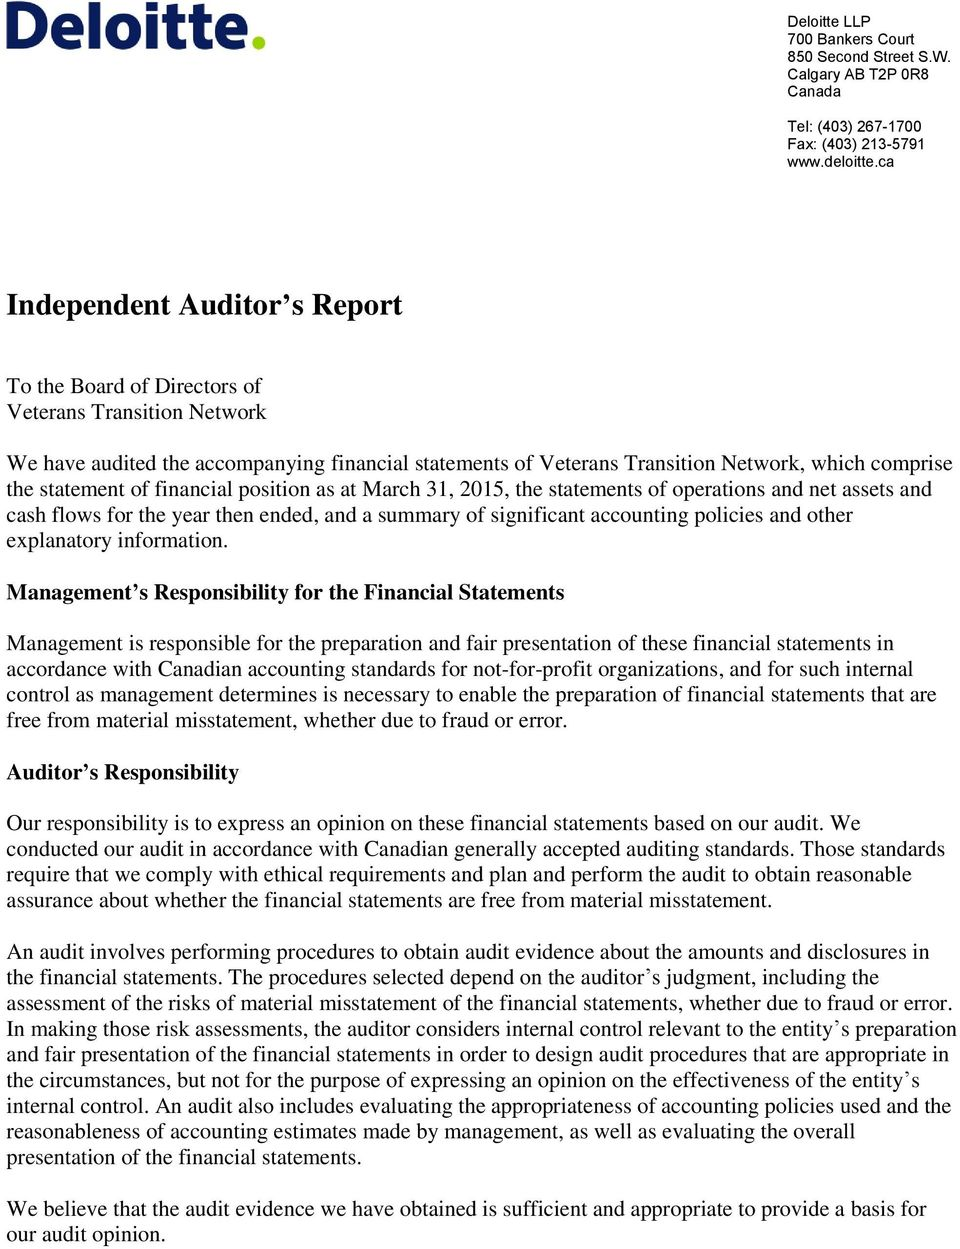 statement of financial position as at March 31, 2015, the statements of operations and net assets and cash flows for the year then ended, and a summary of significant accounting policies and other